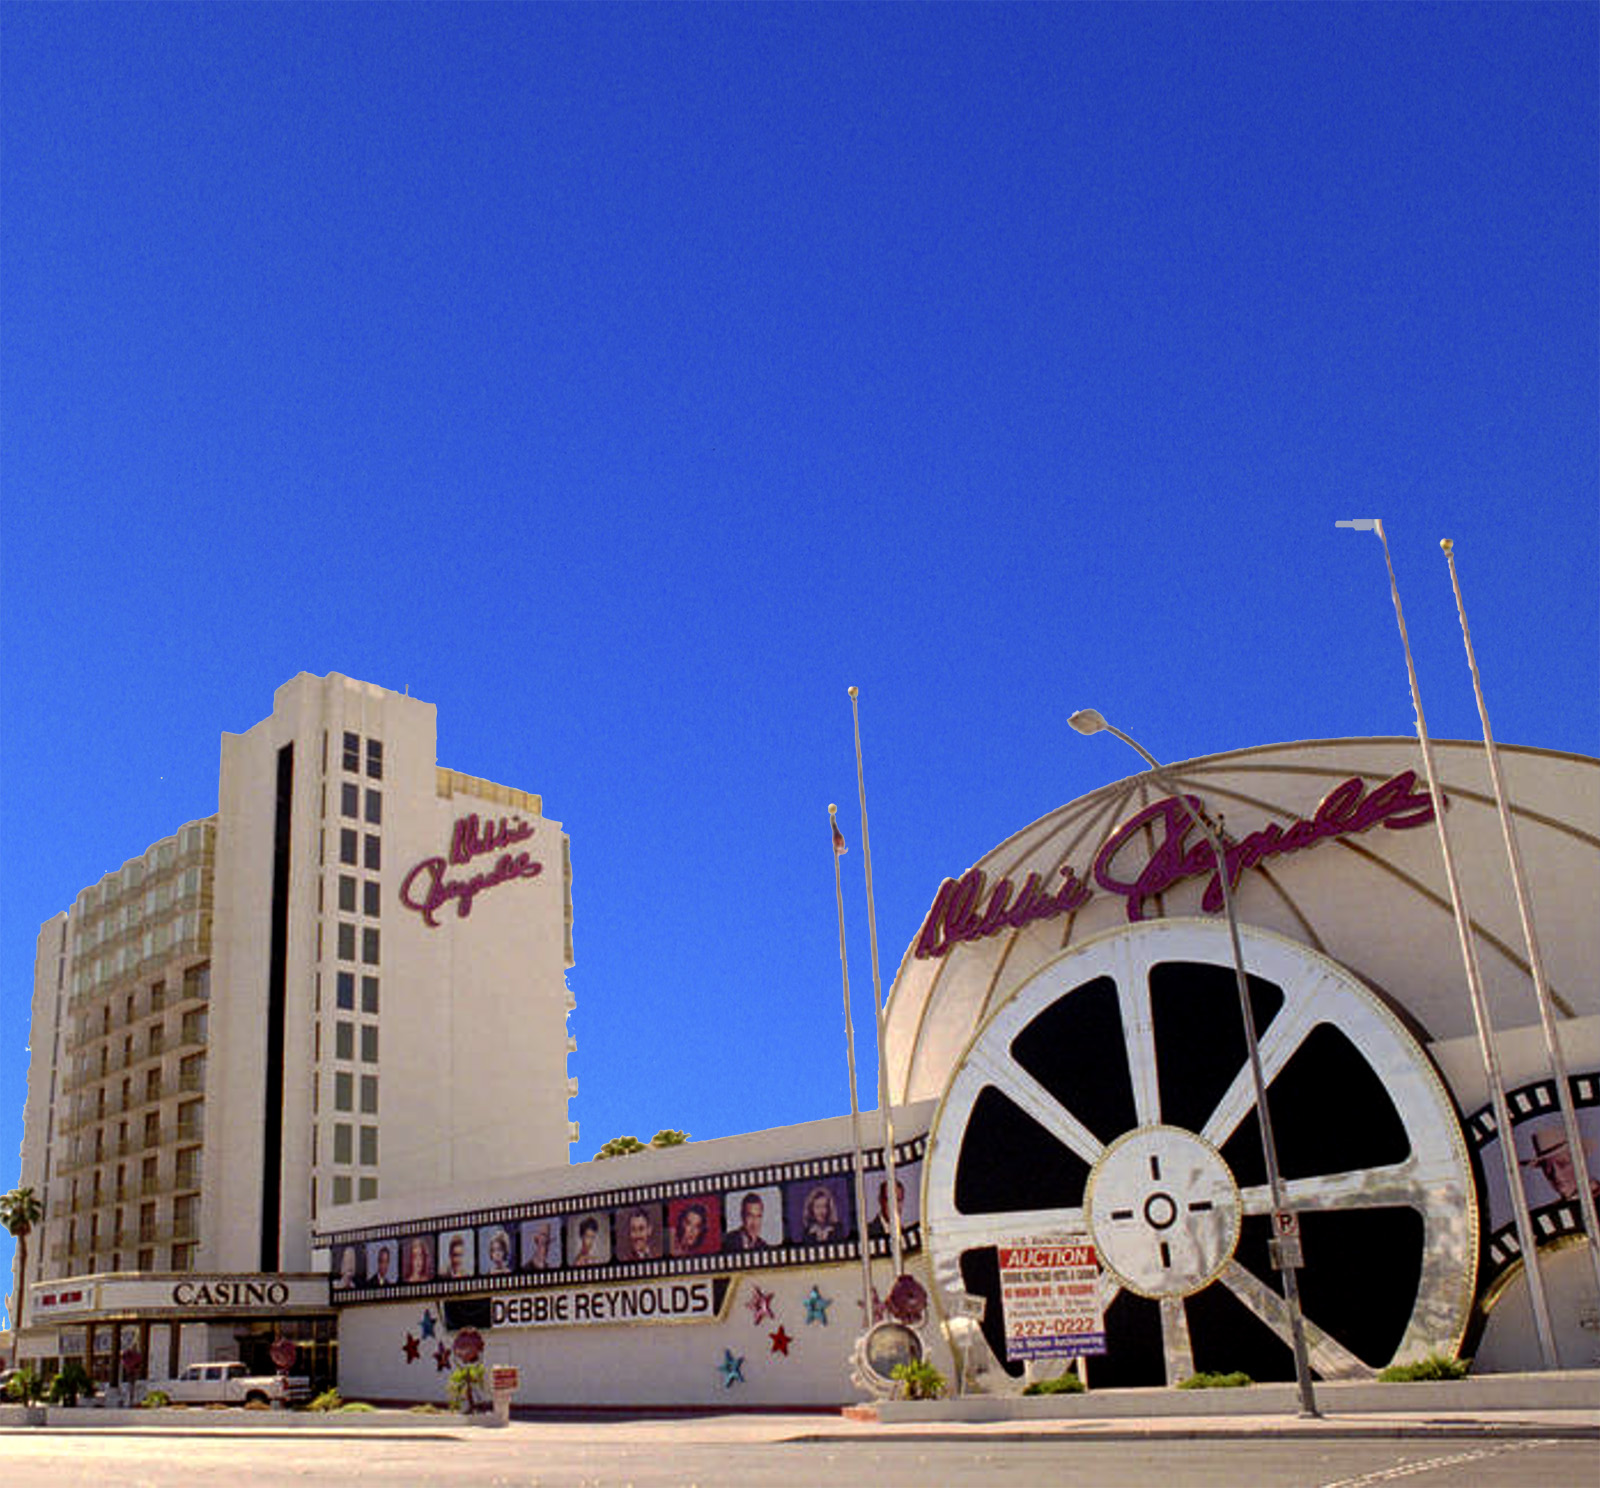 THE DEBBIE REYNOLDS HOTEL AND CASINO